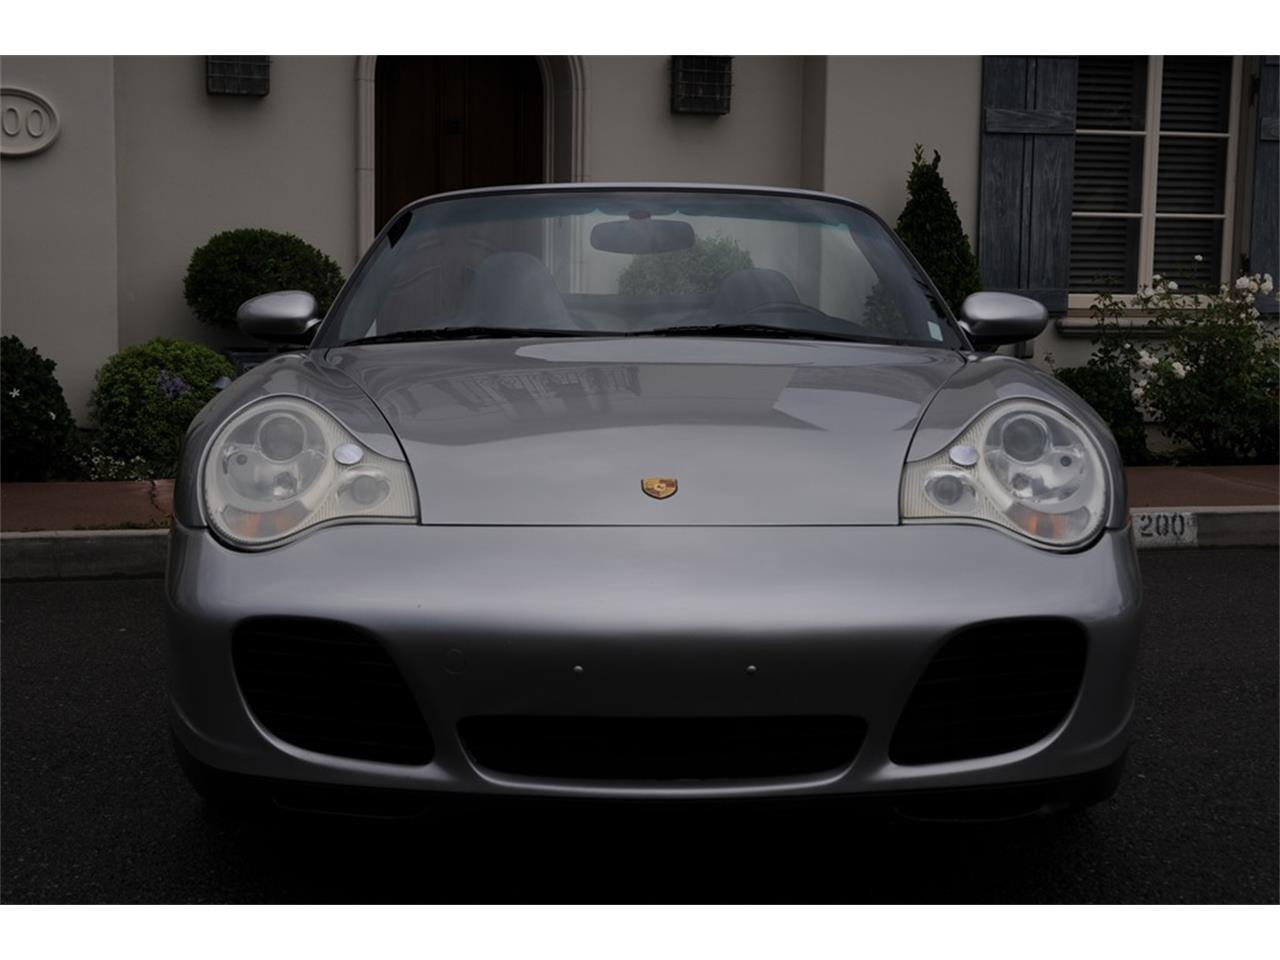 Large Picture of 2004 911 Carrera 4S Cabriolet located in Costa Mesa California - $32,990.00 - QK9K